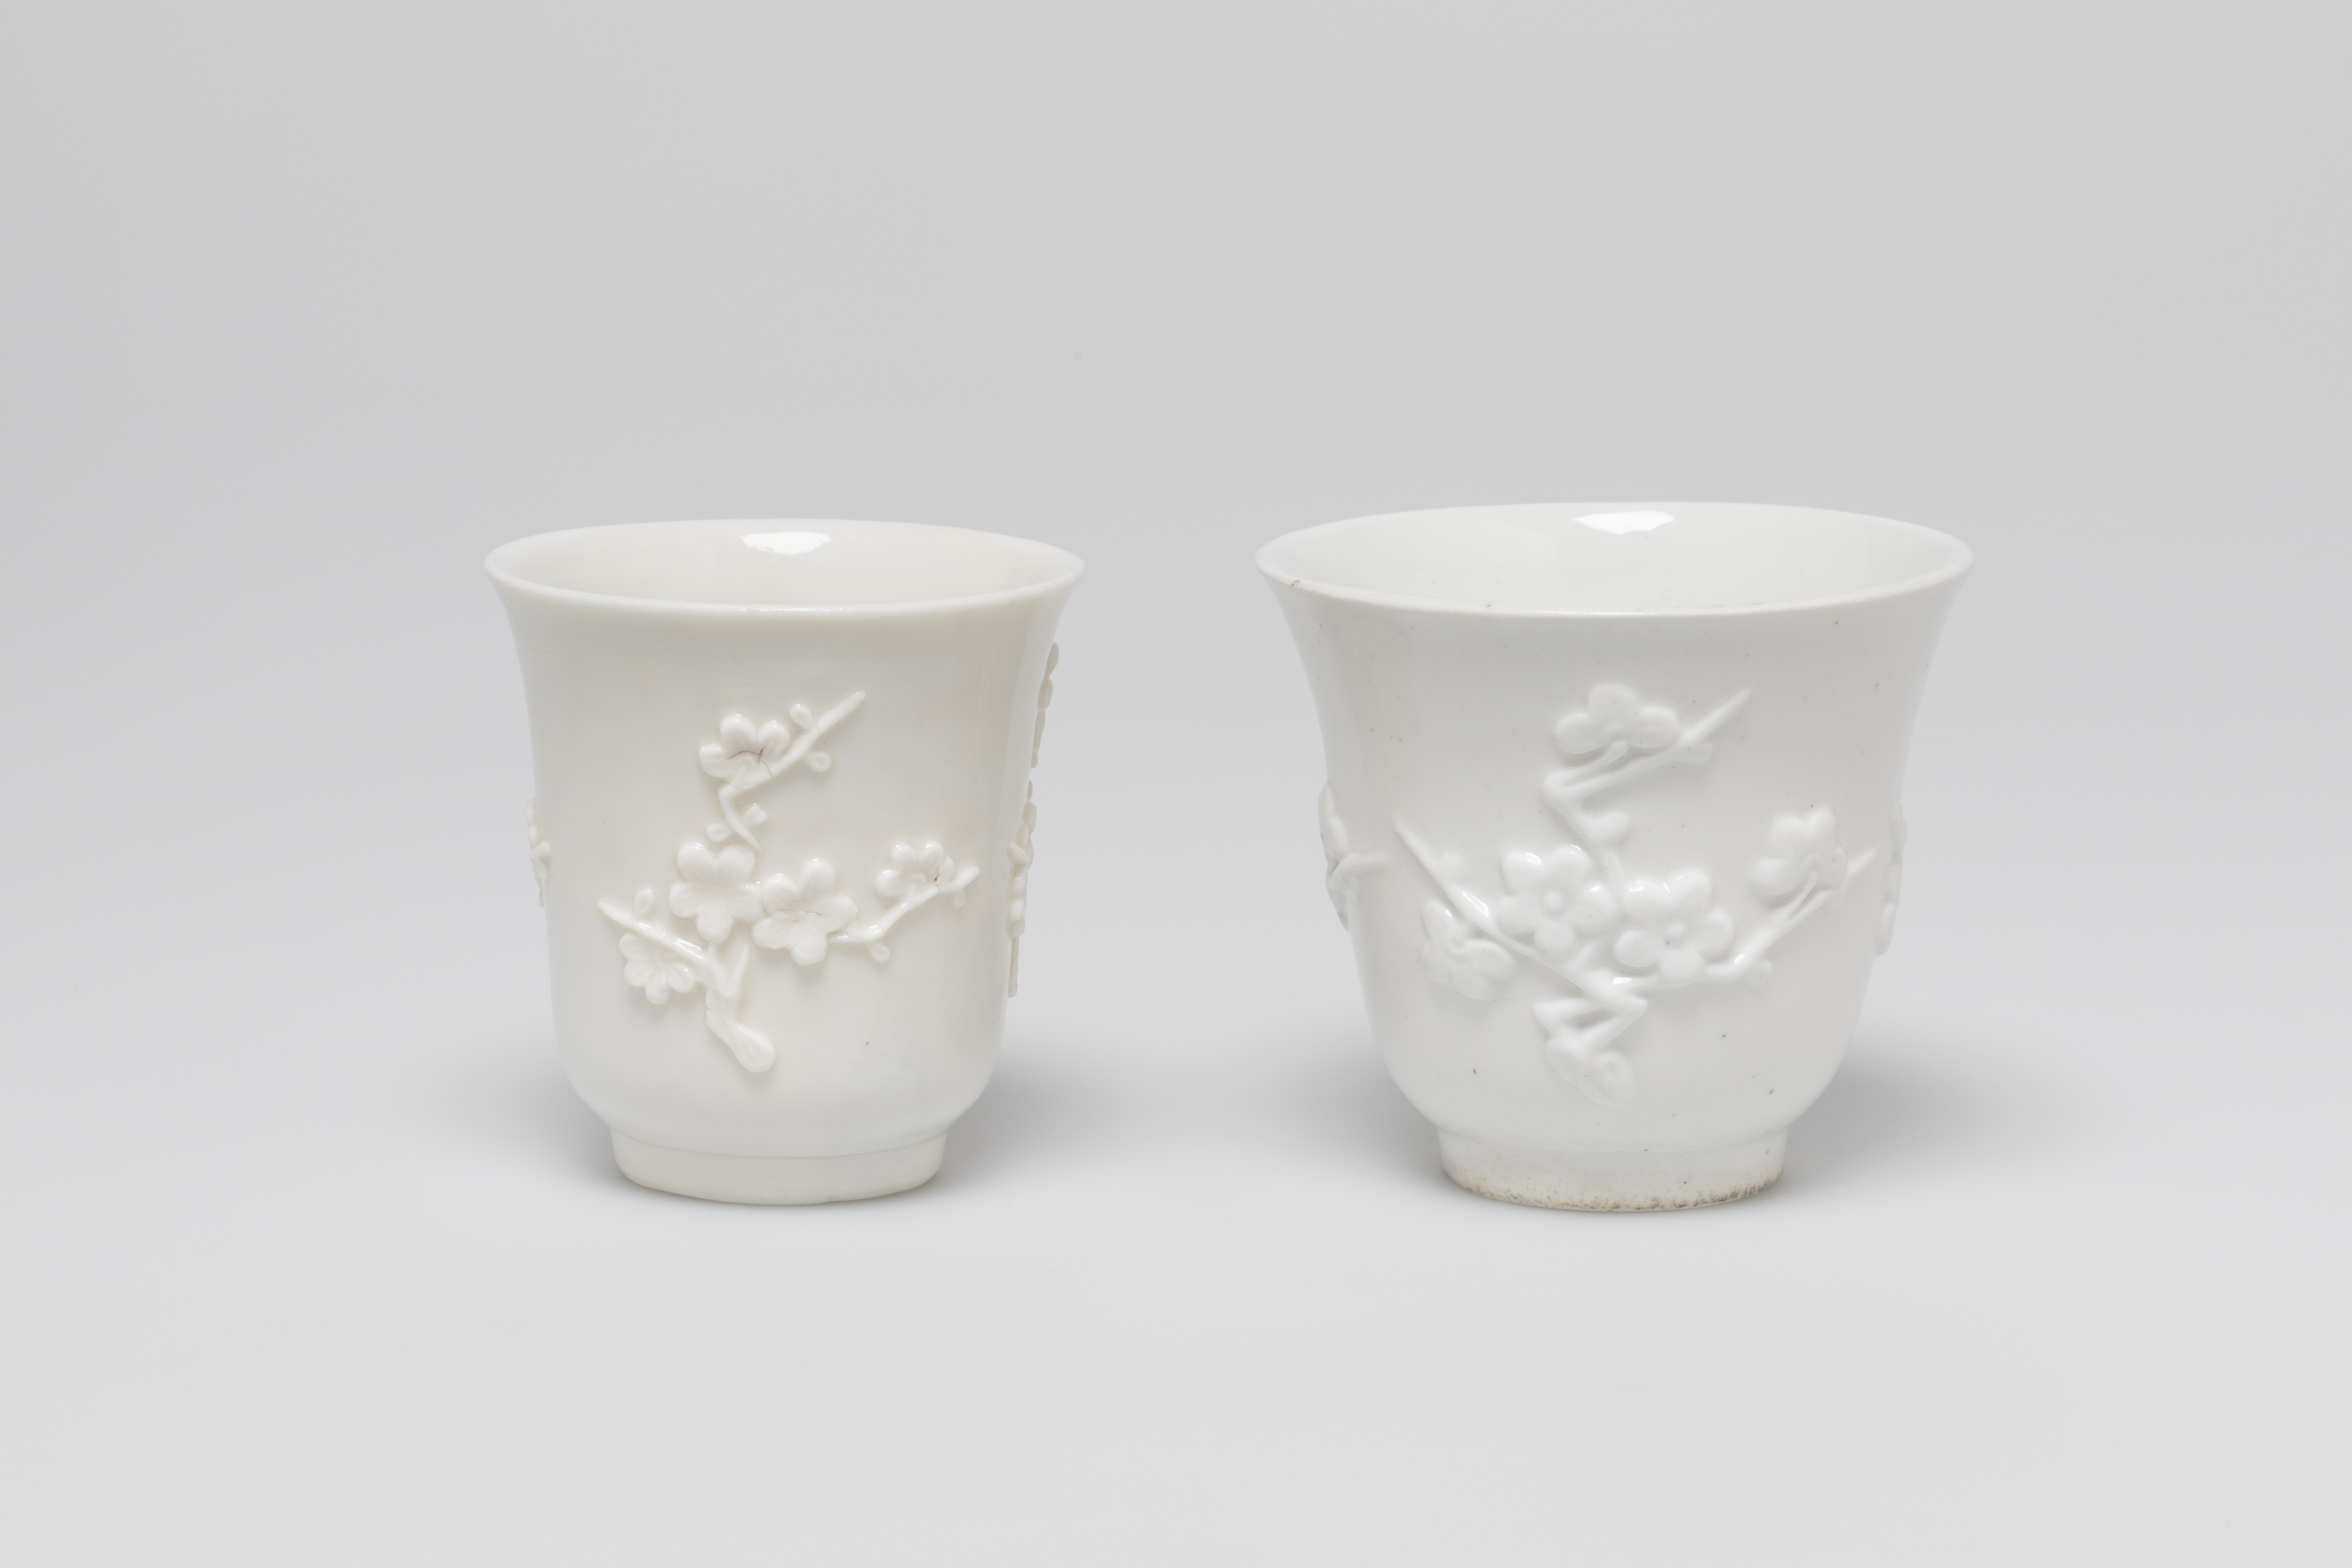 An image of almost identical two white tea cups decorated with blossom blowers in relief.